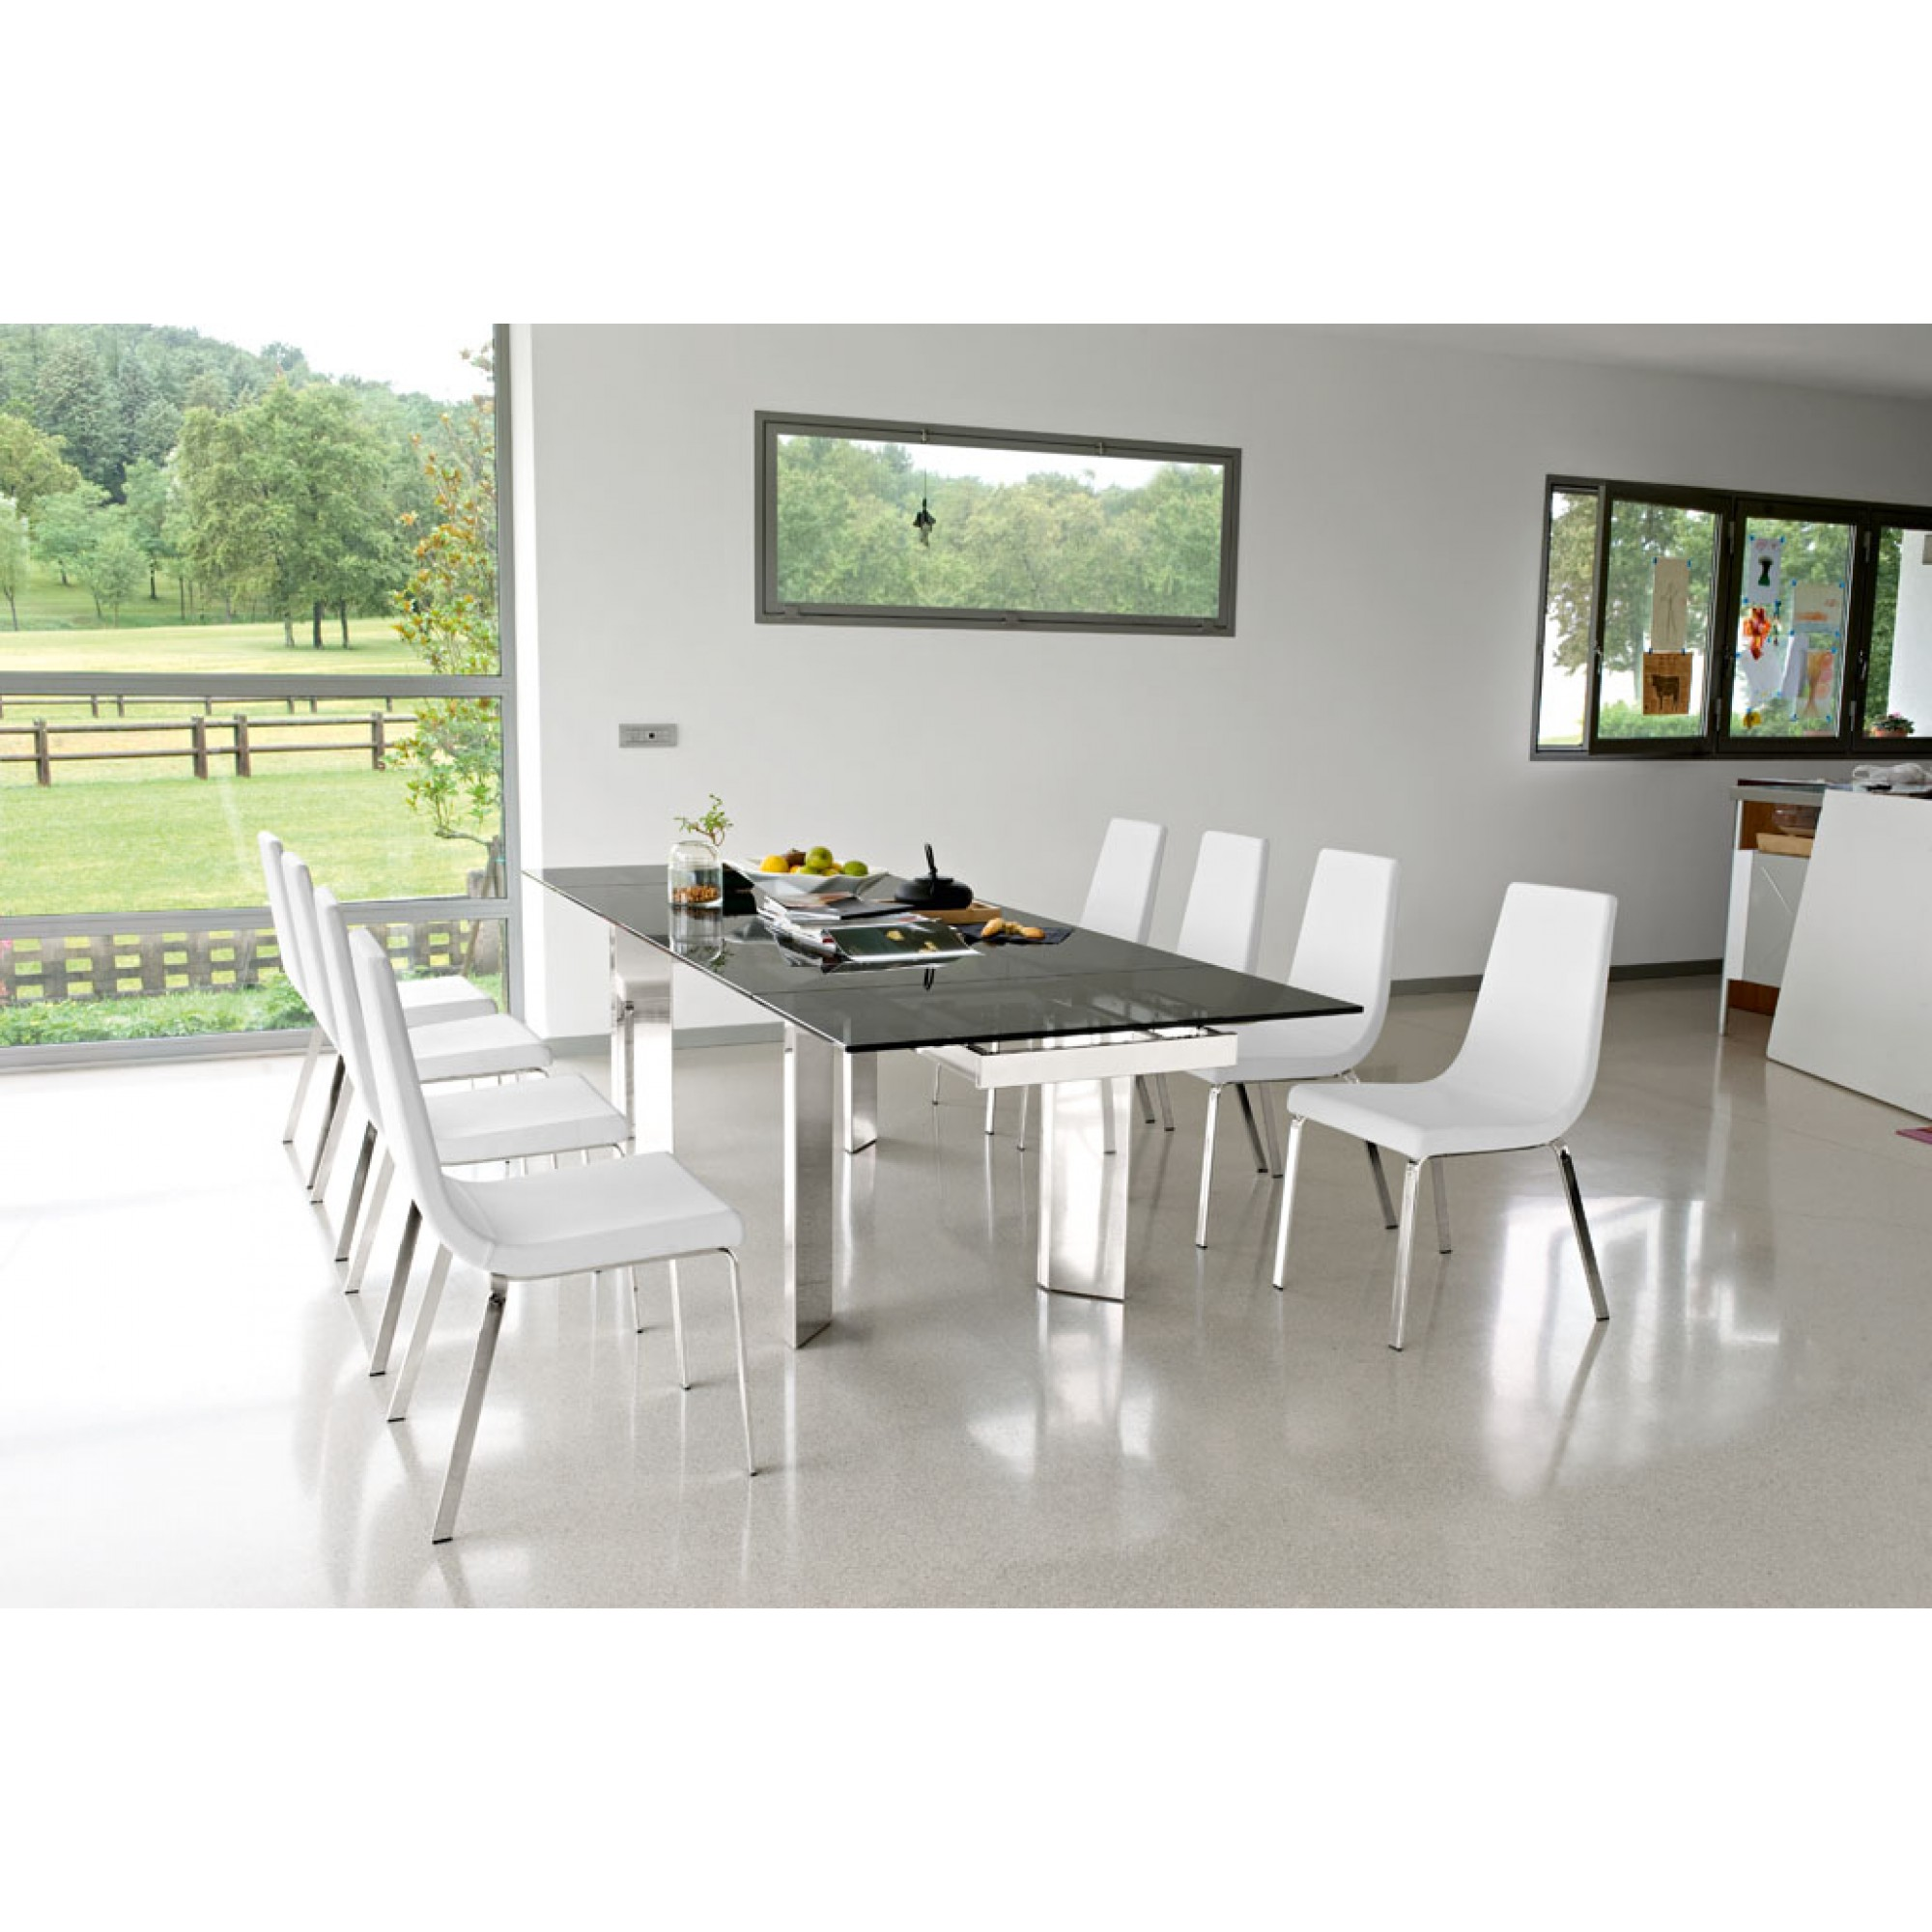 Calligaris Dining Chairs Cruiser Chairs Seats Connubia By Calligaris Masonionline